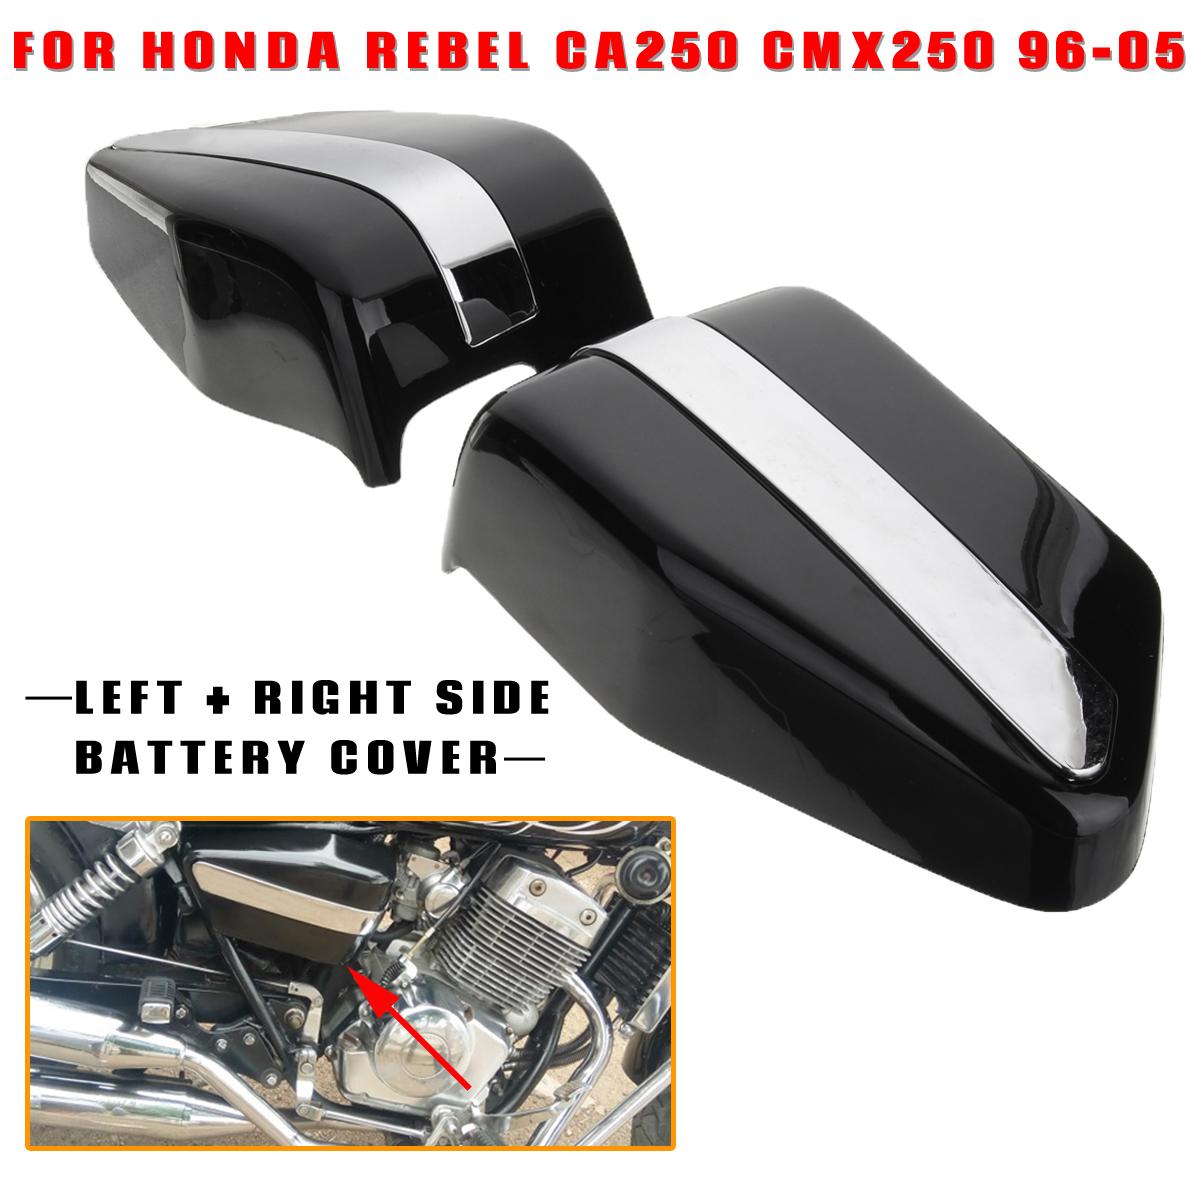 Motorcycle Fairing Battery Covers 2 Sides For Honda Rebel CA250 CMX250 96-05